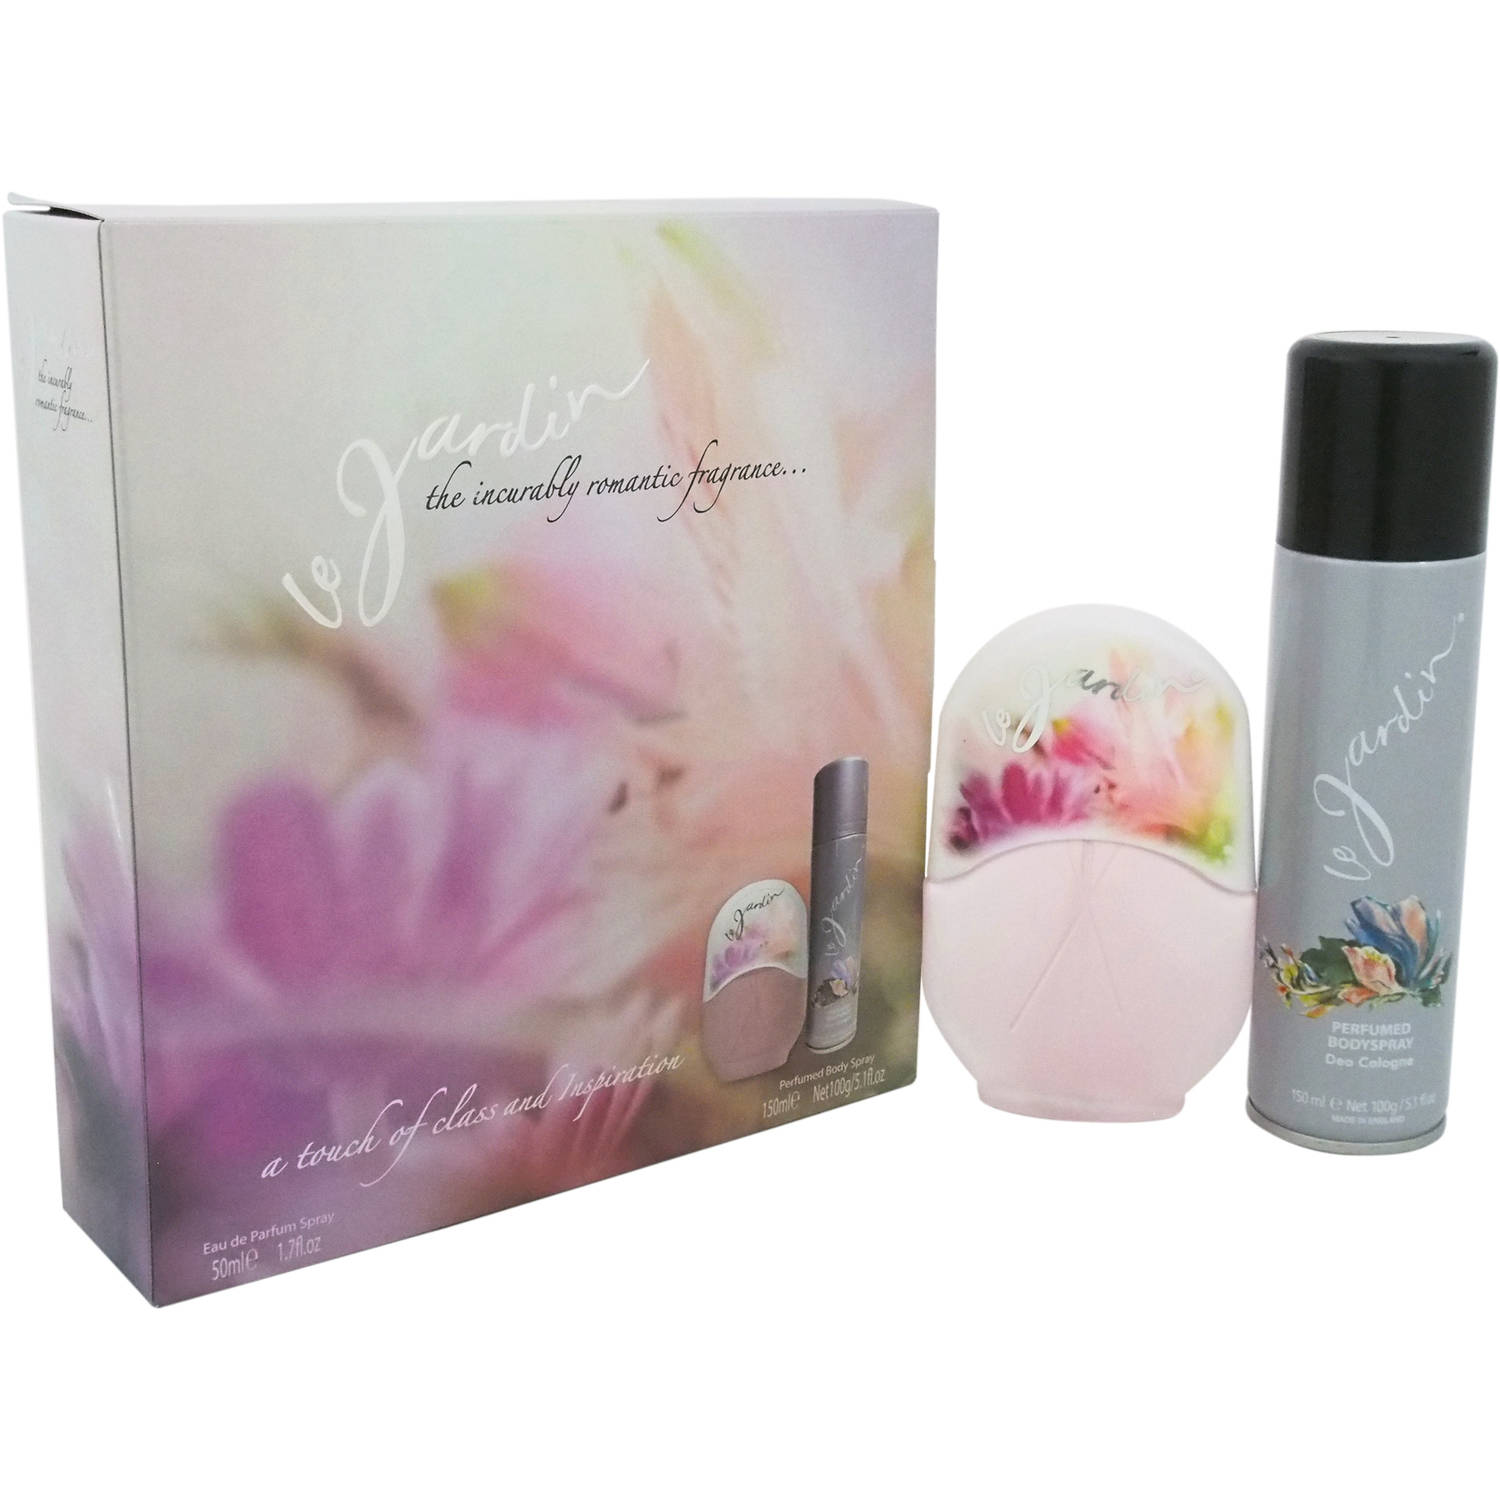 Le Jardin The Incurably Romantic Fragrance by Eden Classics for Women - 2 Pc Gift Set 1.7oz EDP Spray, 5.1oz Perfumed Body Spray